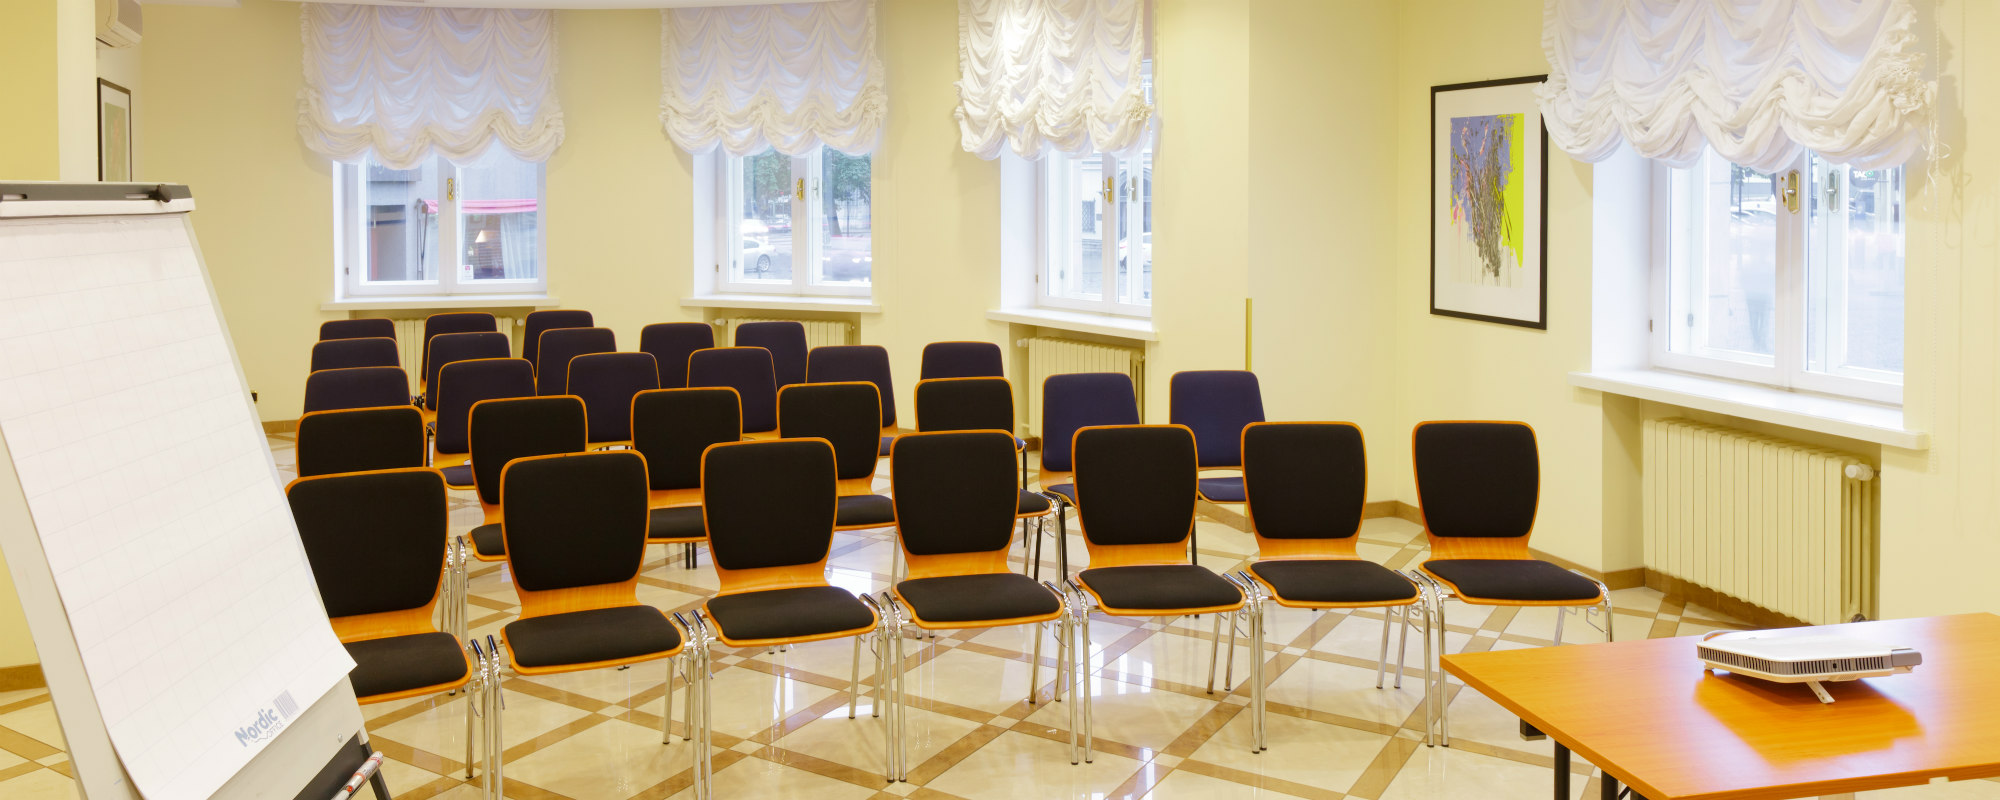 Meeting room at the charming My City Hotel Tallinn. Theatre type